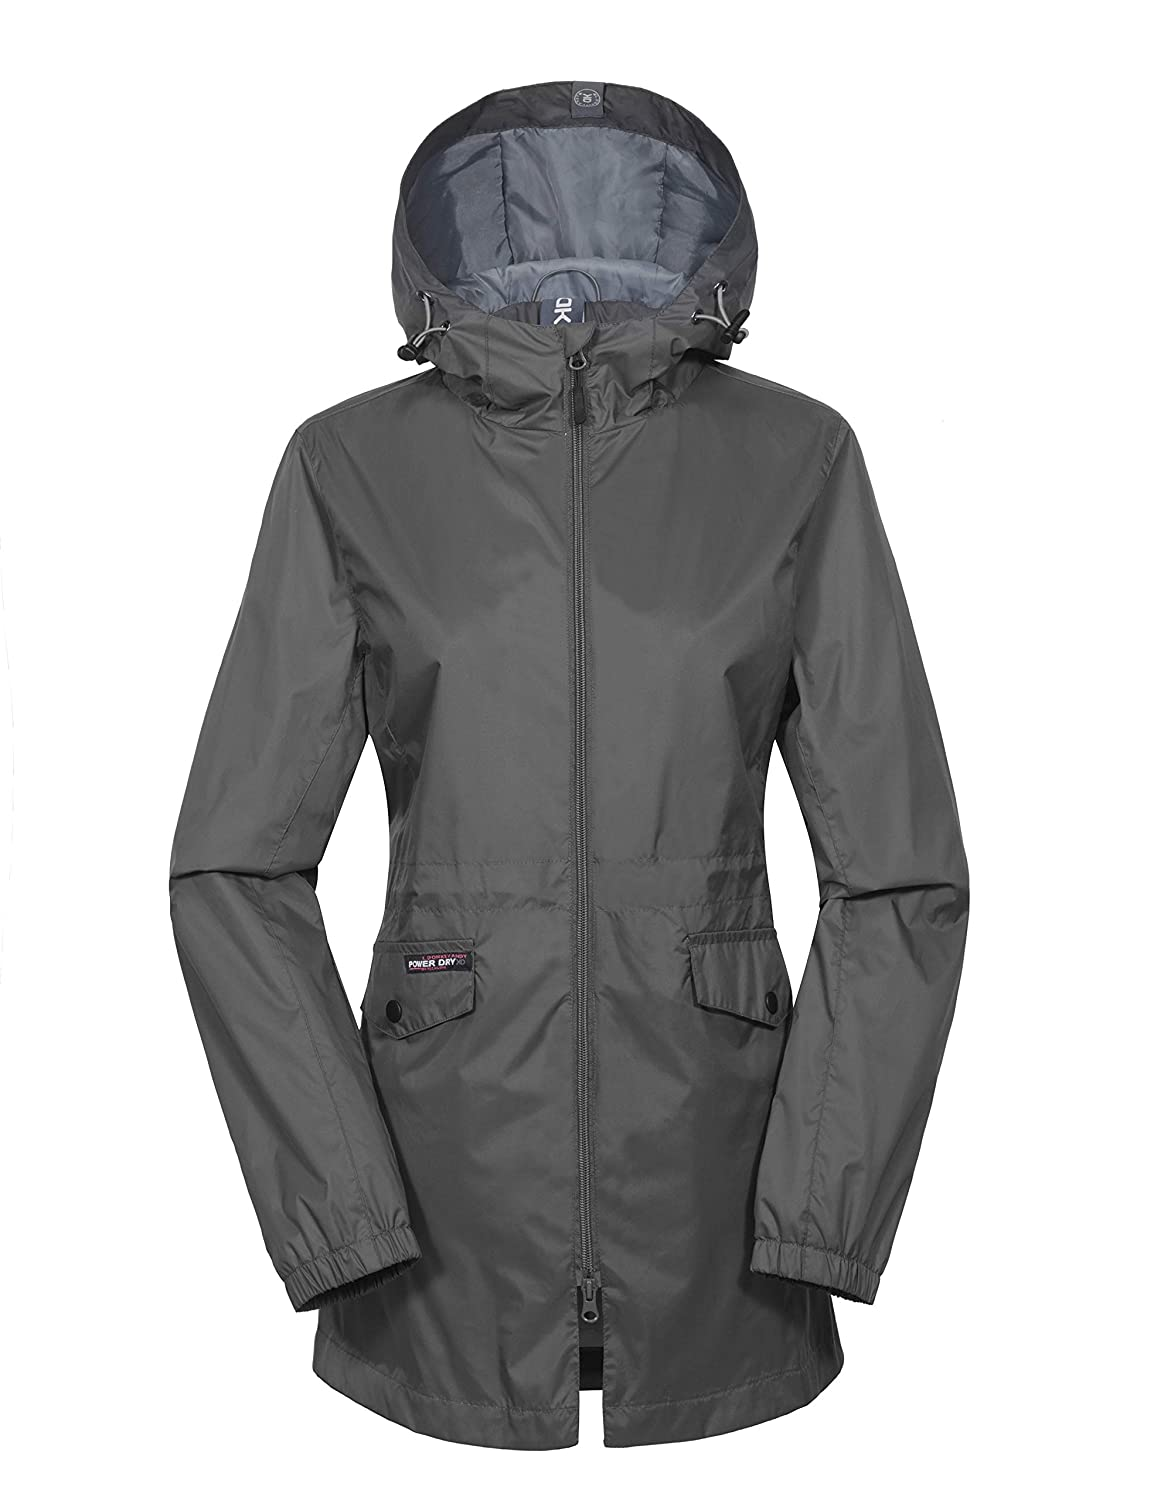 Grey Little Donkey Andy Women's Long Lined Rain Jackets Waterproof with Hood